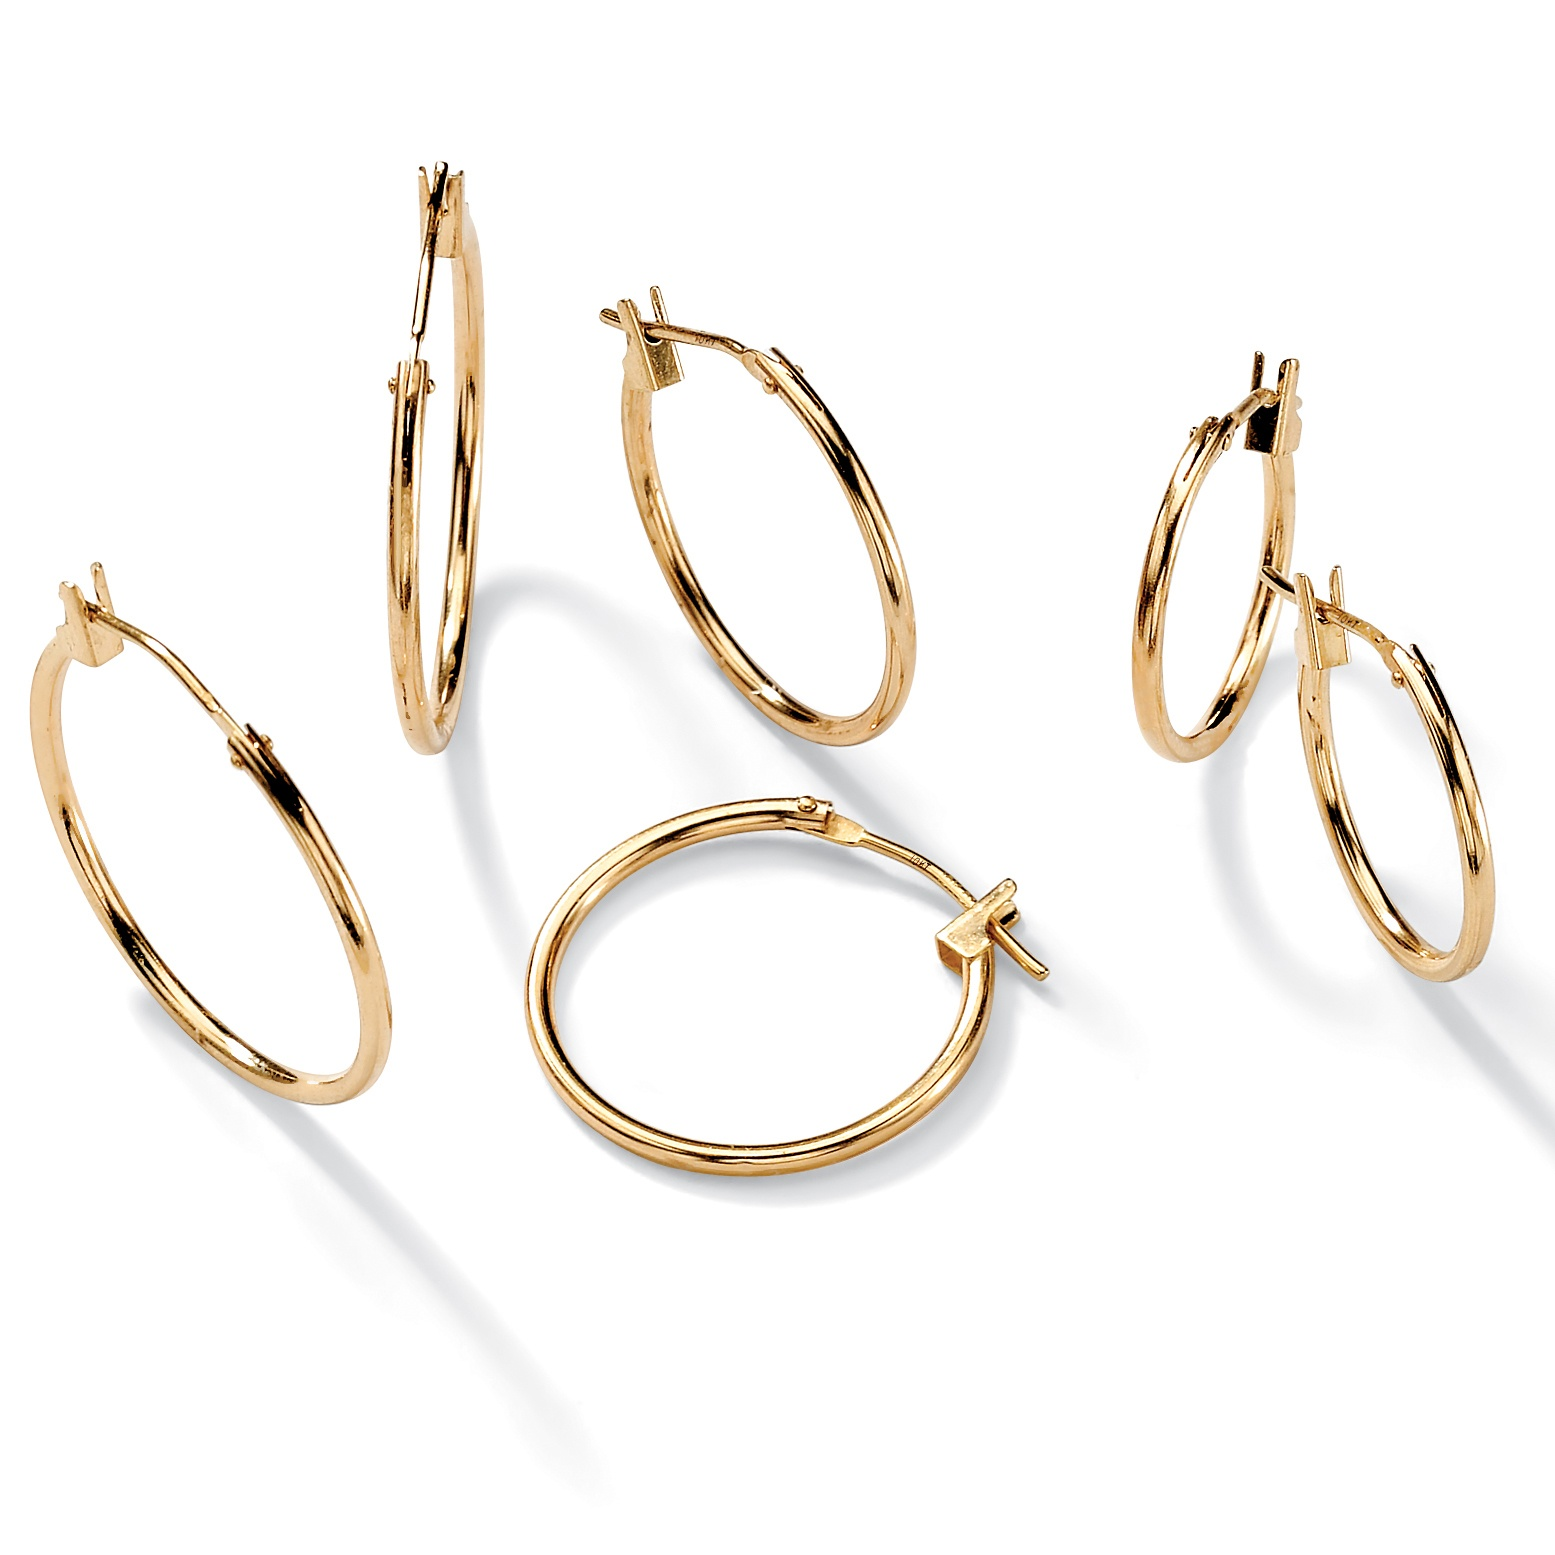 Three-Pair Set of Hoop Earrings in 10k Gold